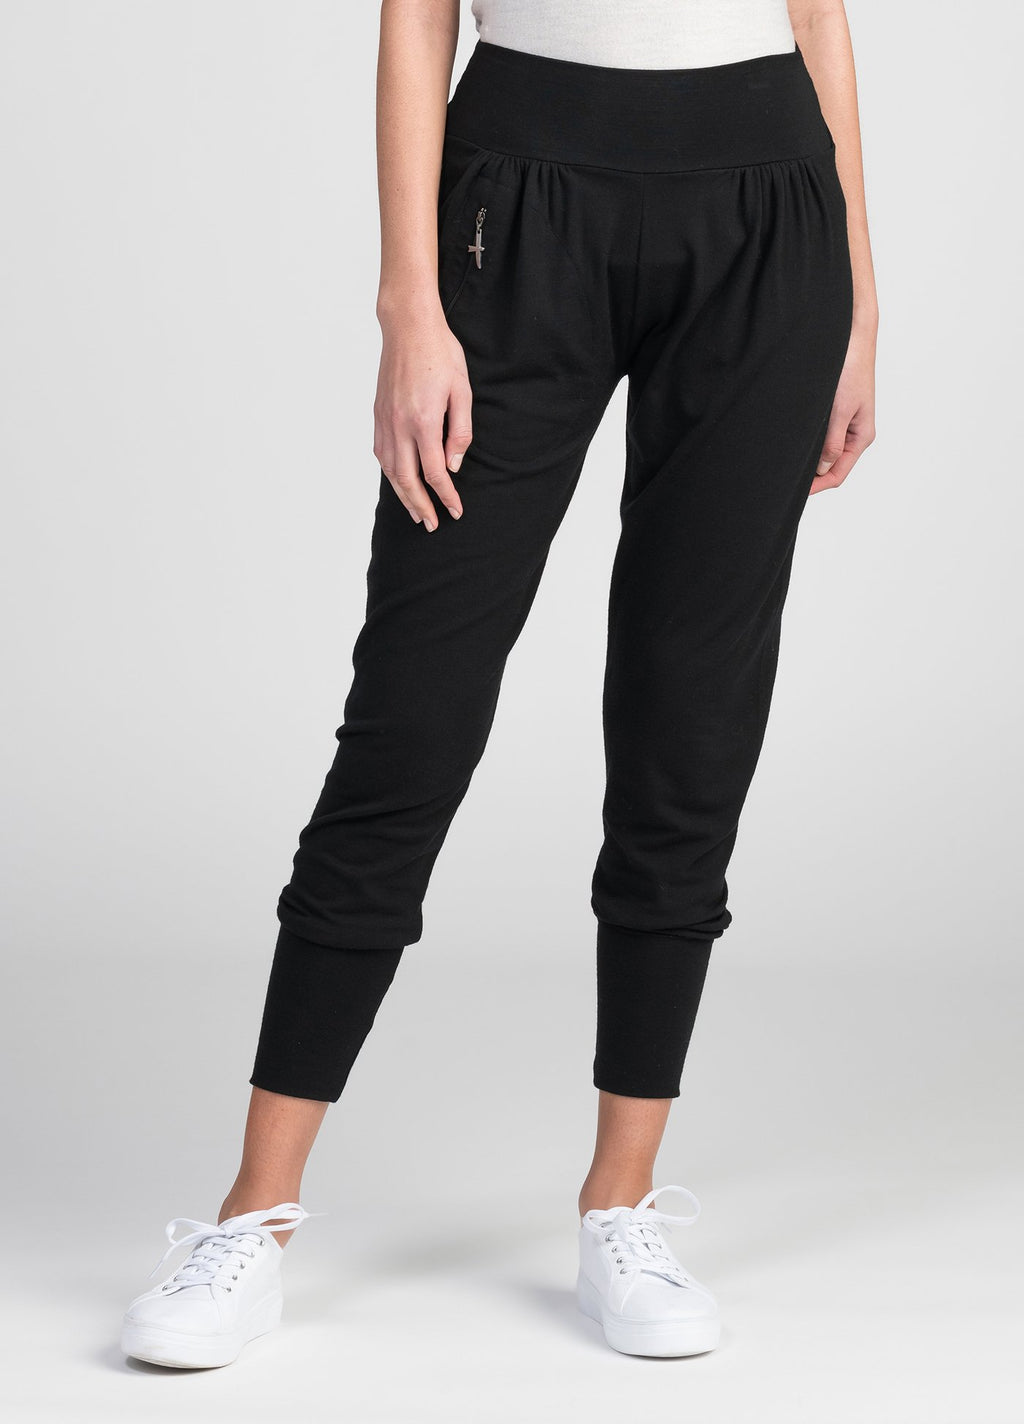 SLOUCHY ZIP PANT - Woolshed Gallery